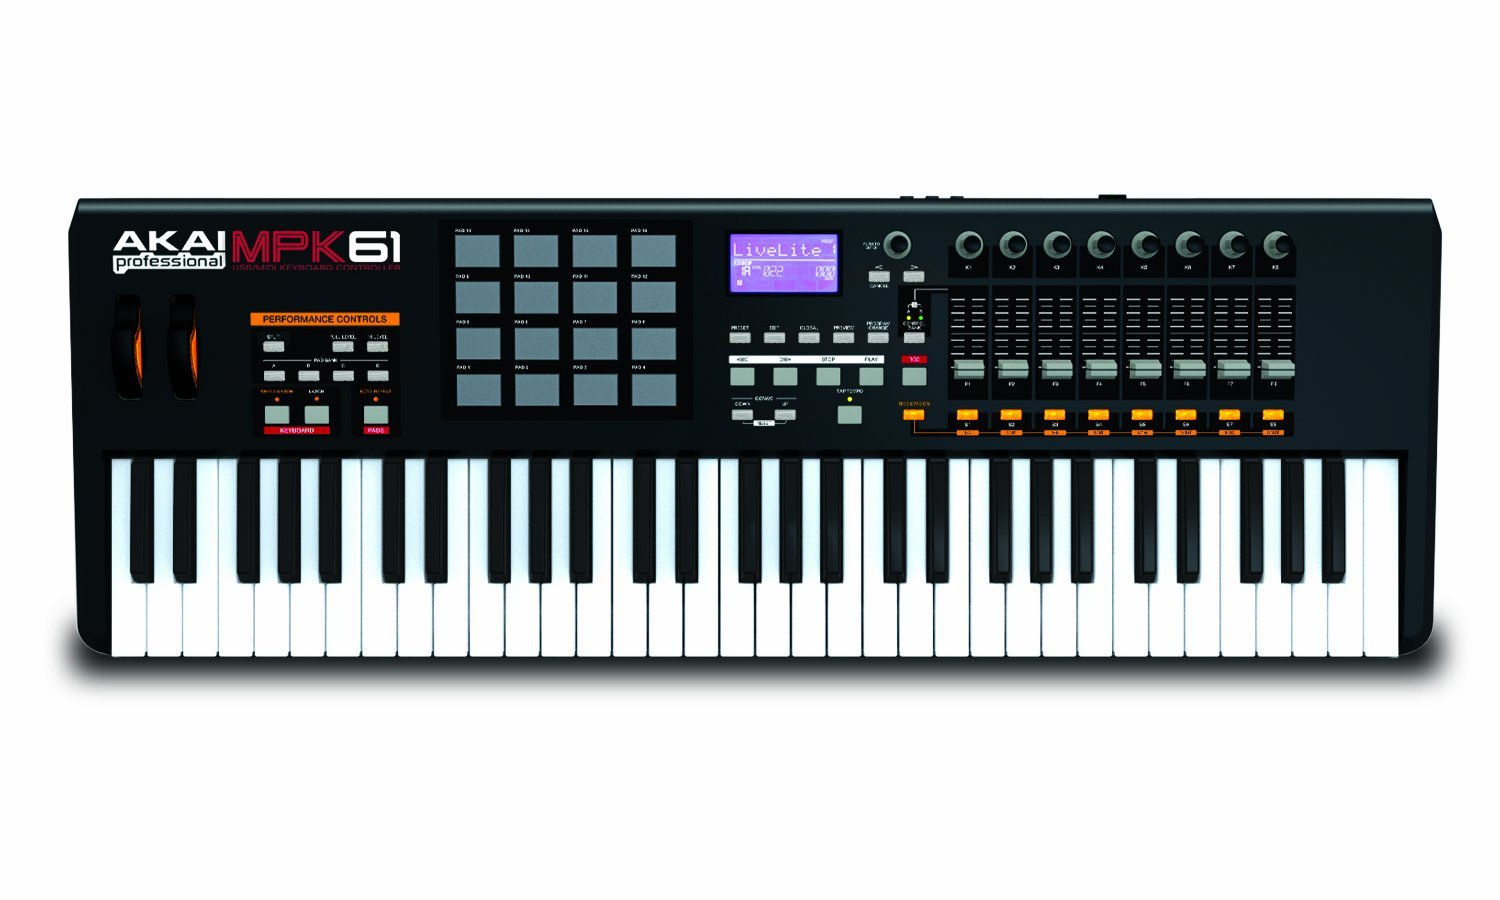 Cheap Home Studio Keyboards and Midi Controllers for Music Producers